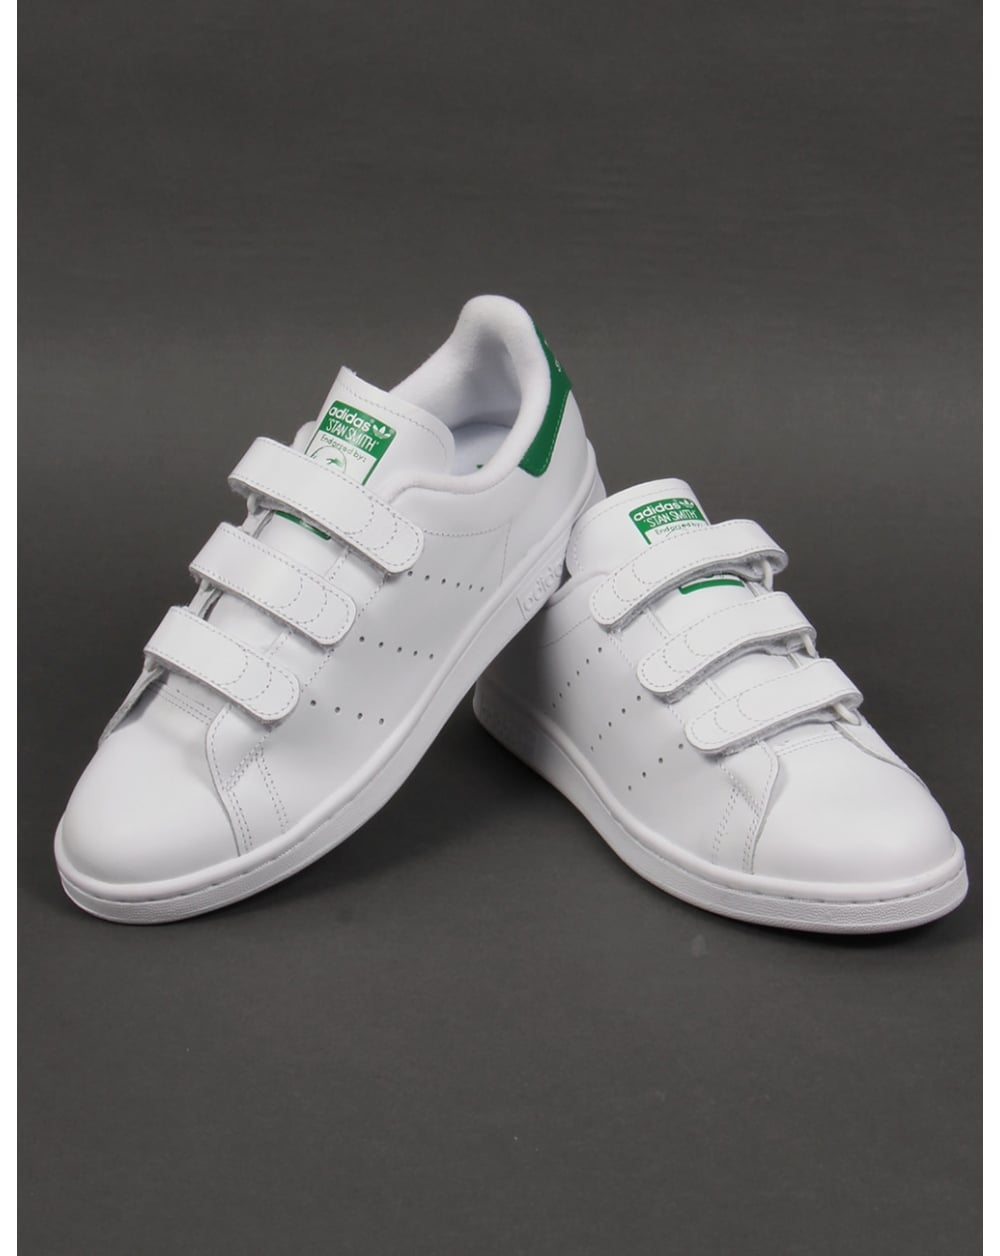 adidas stan smith cf trainers white green originals shoes sneakers. Black Bedroom Furniture Sets. Home Design Ideas